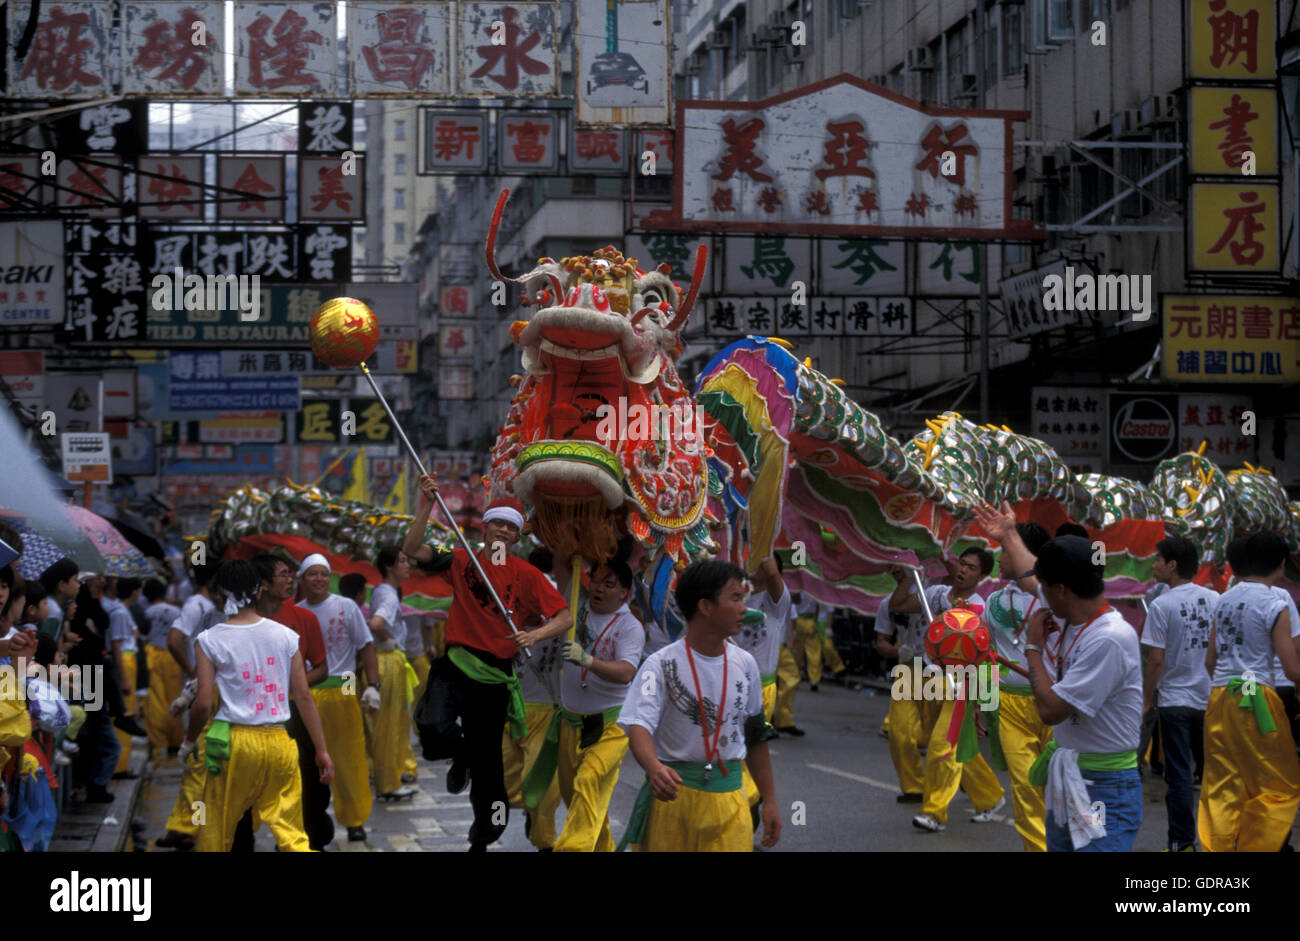 the Dragon festival at the Chinese newyear in Hong Kong in the south of China in Asia. - Stock Image